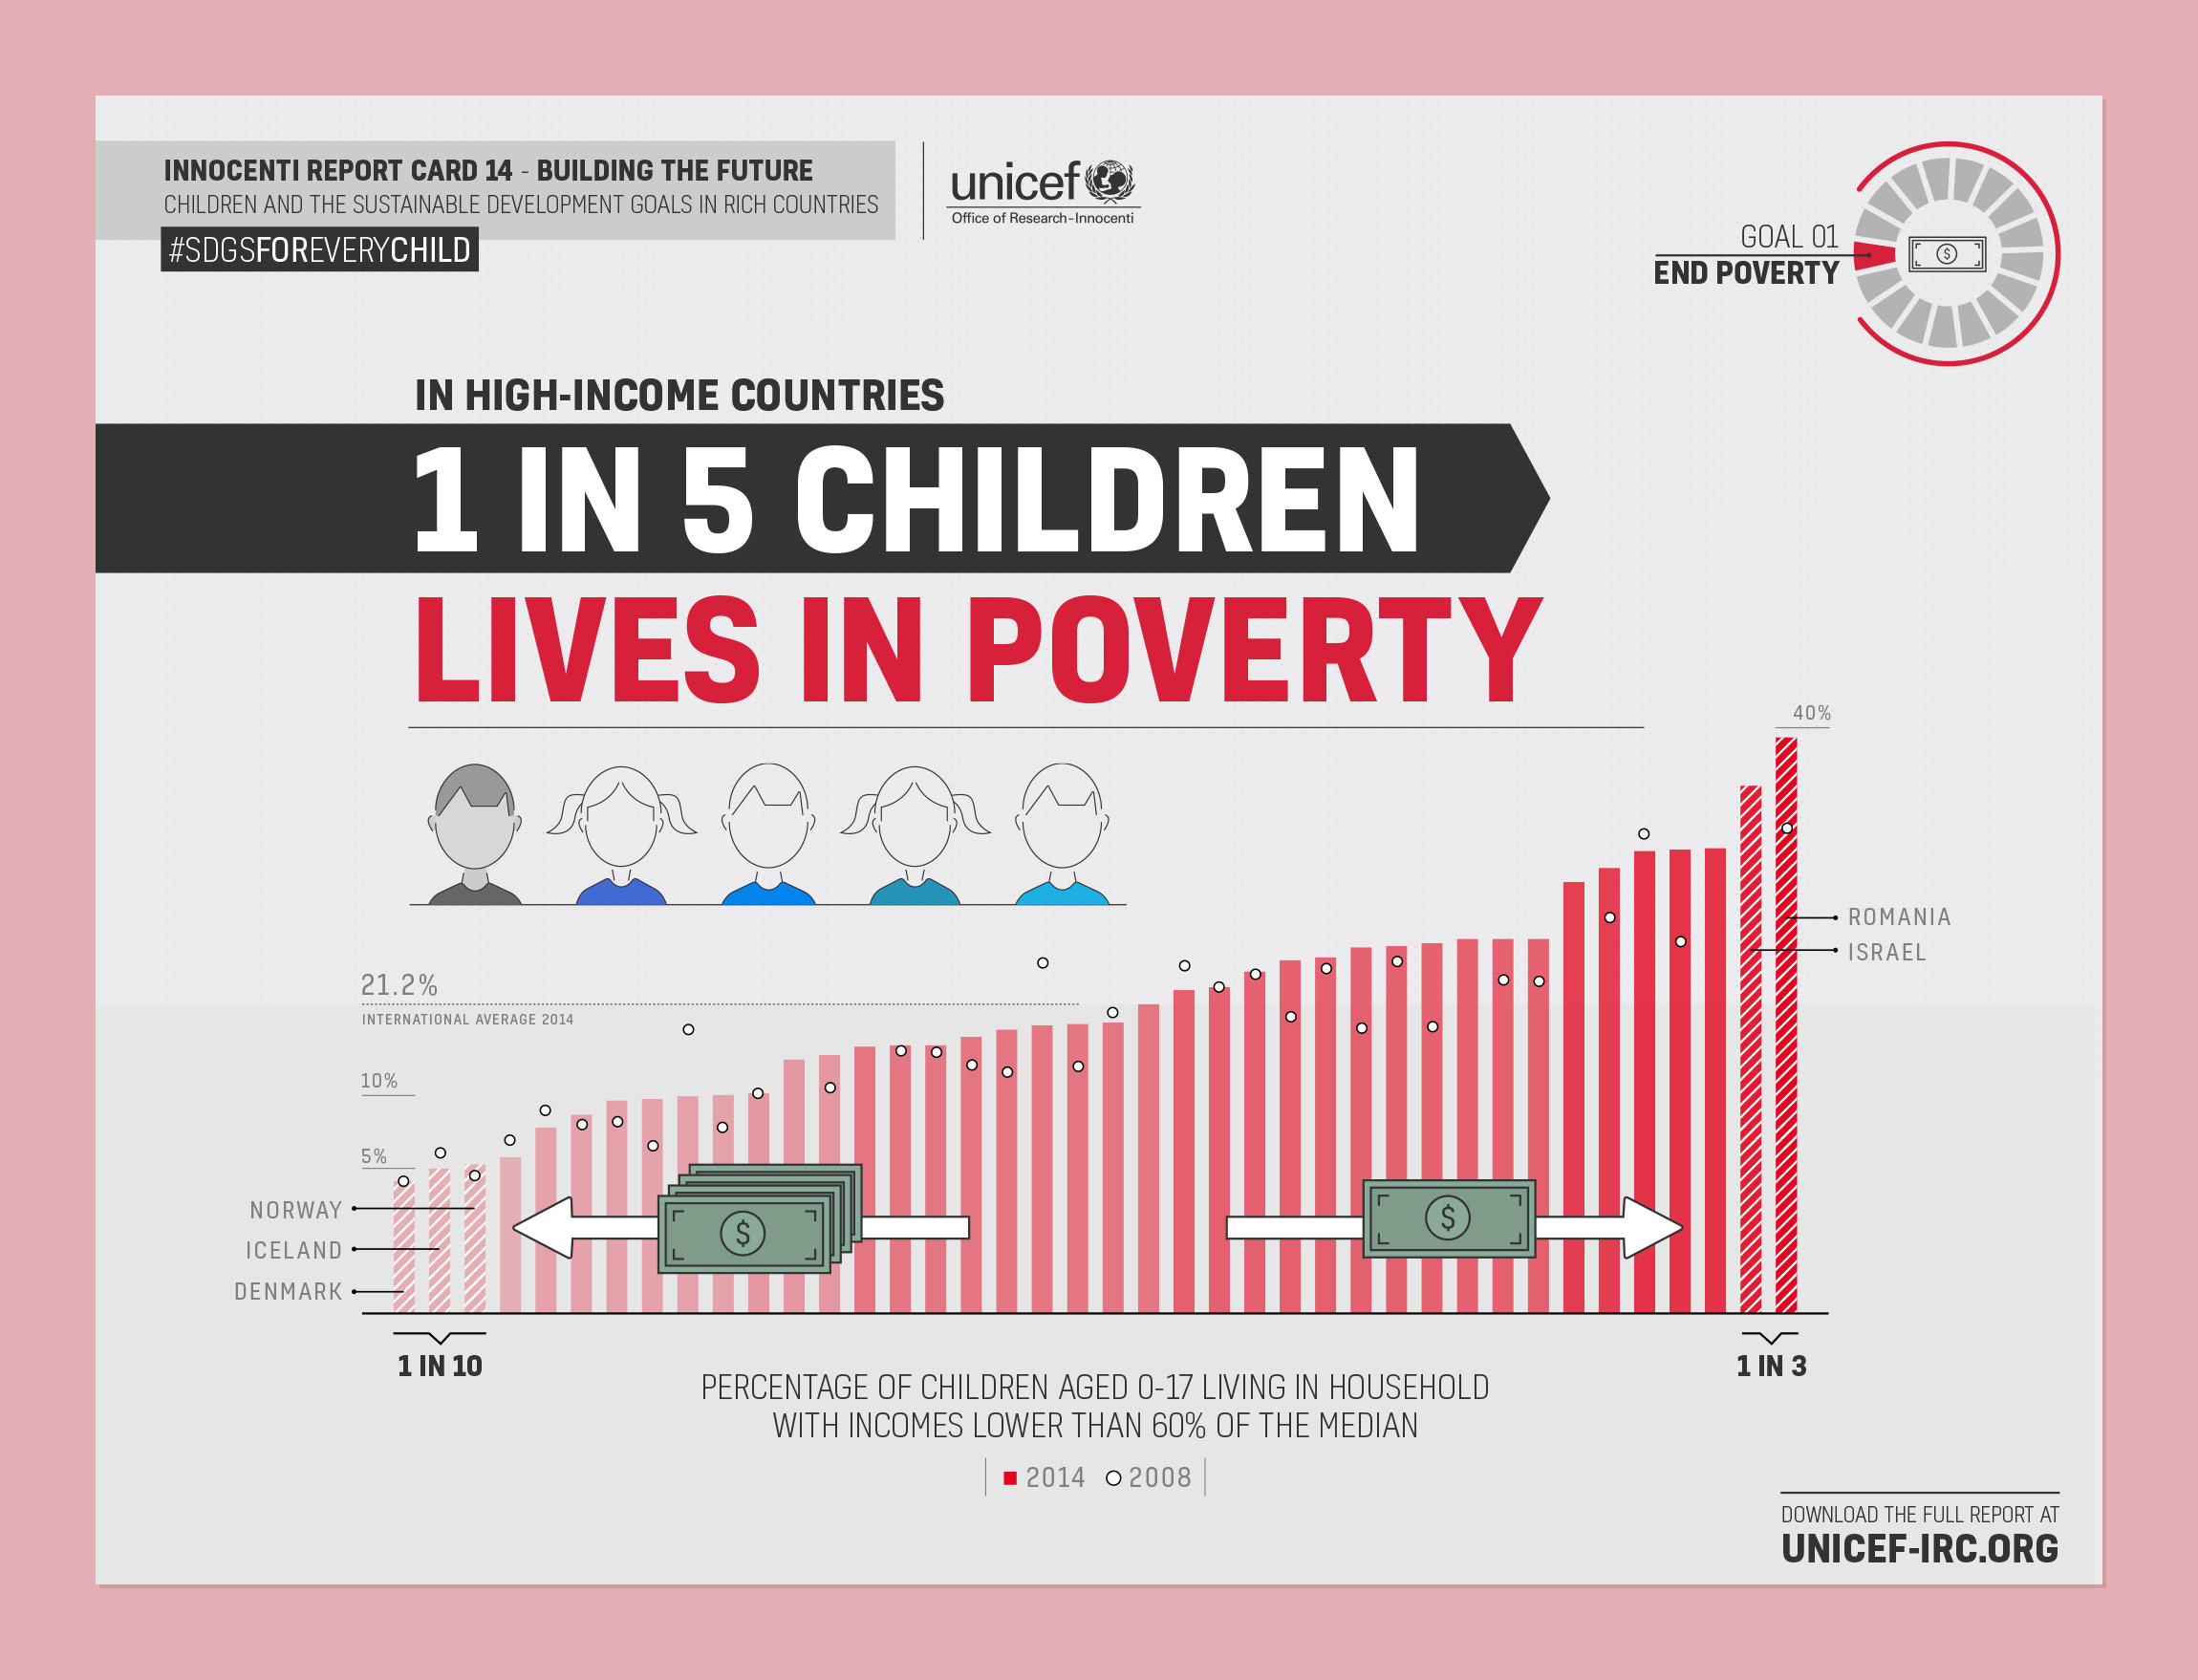 UNICEF Infographic - Children and the Sustainable Development Goals in Rich Countries